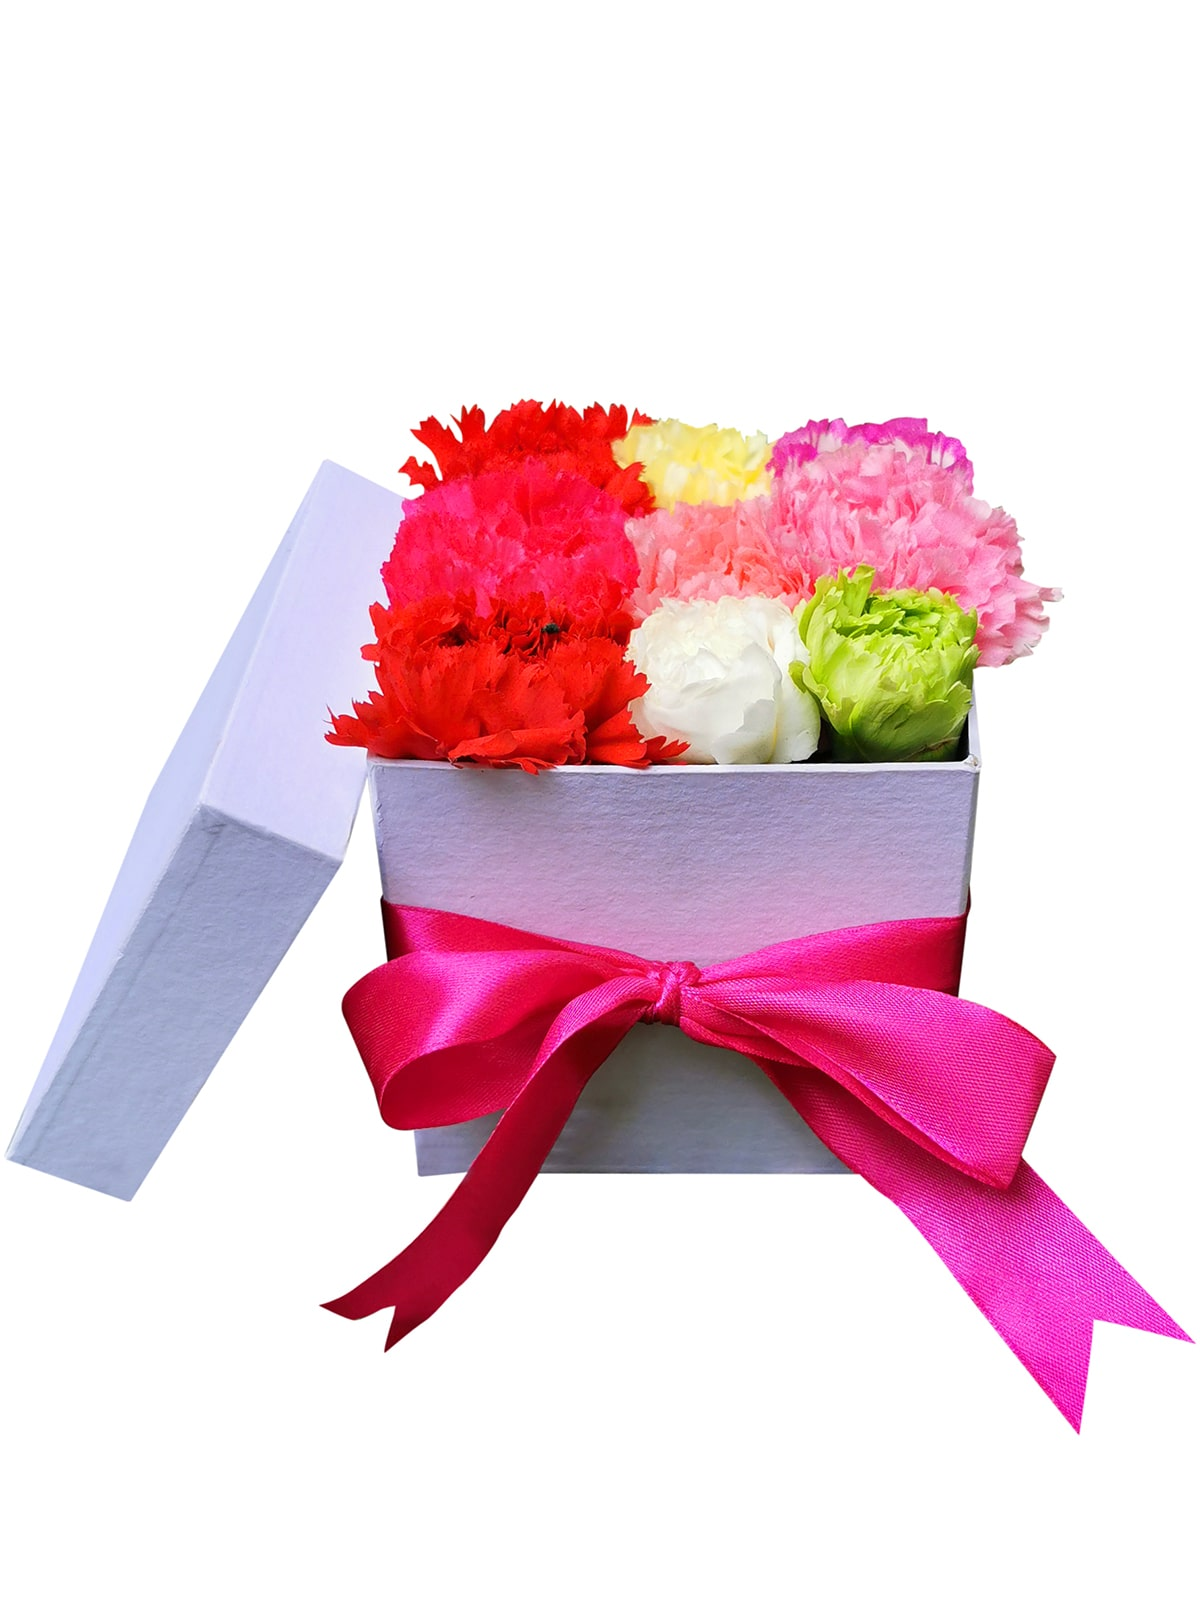 121 Mixed Carnation Love Box 002